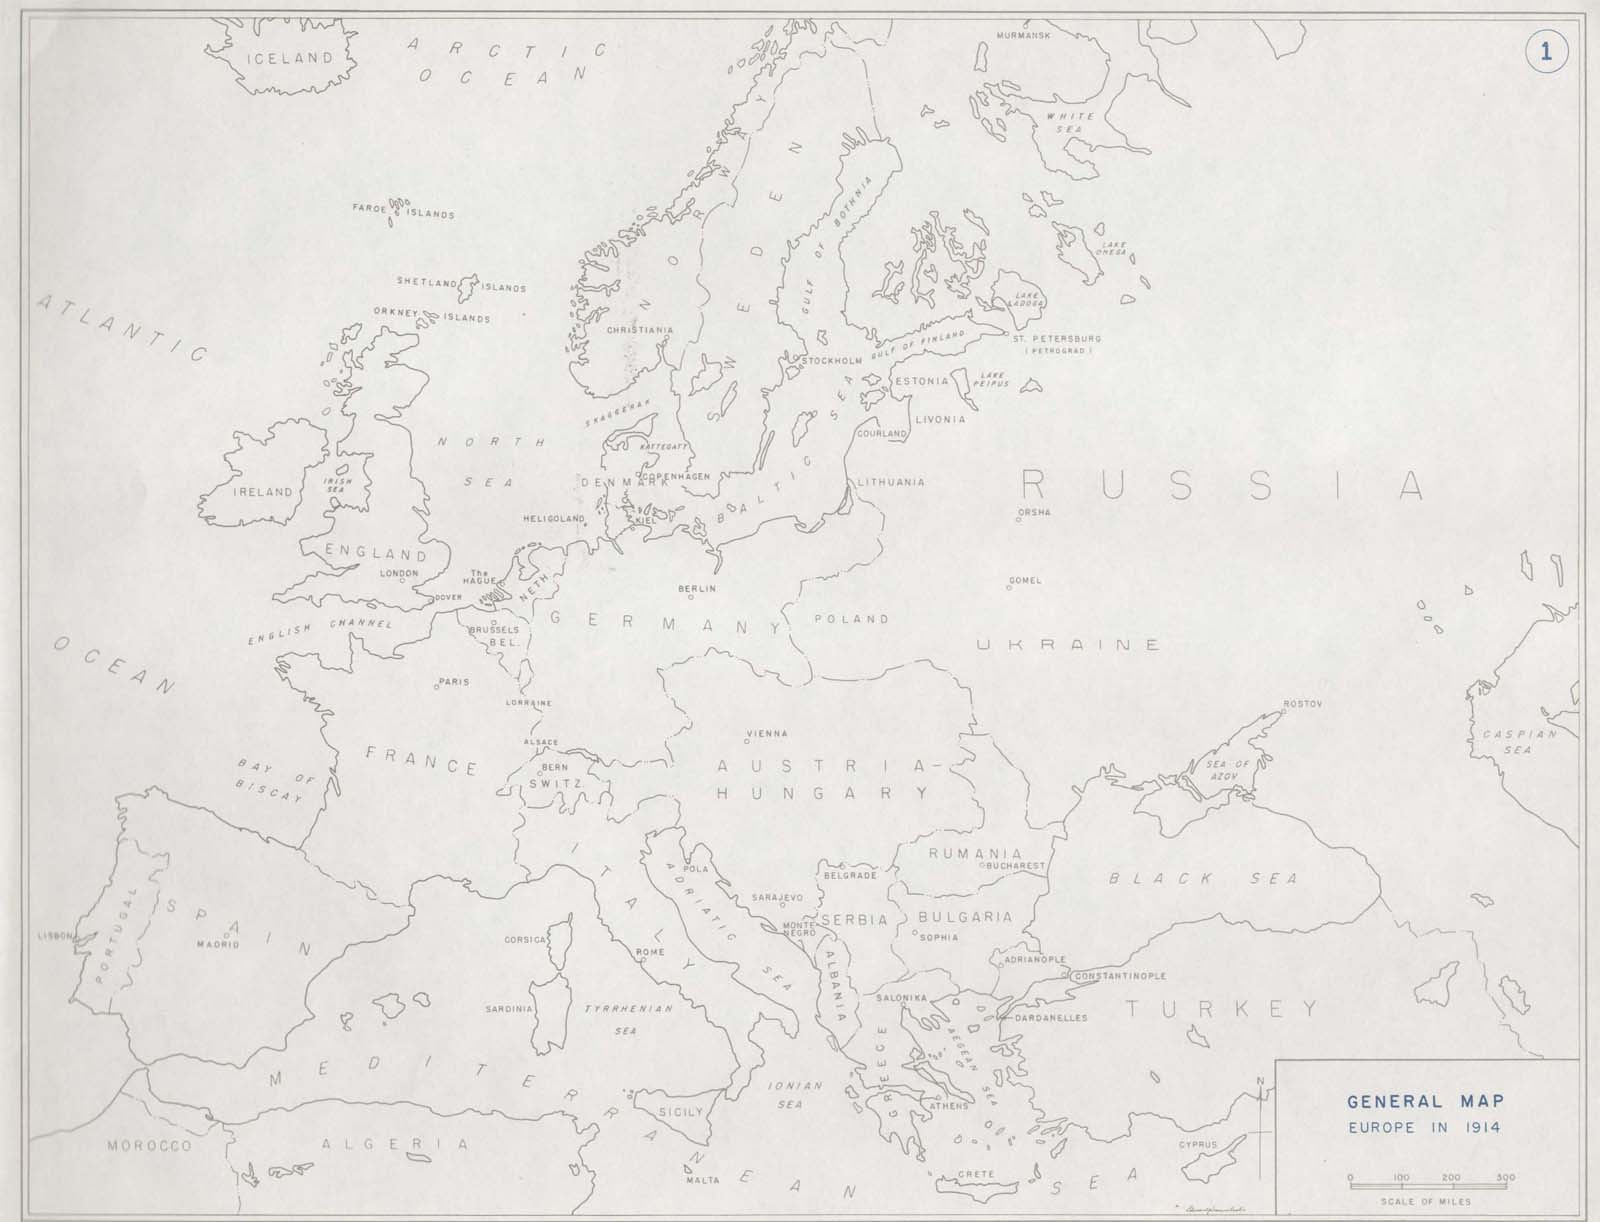 A Map Of Europe In 1914.First World War Com Battlefield Maps Europe In 1914